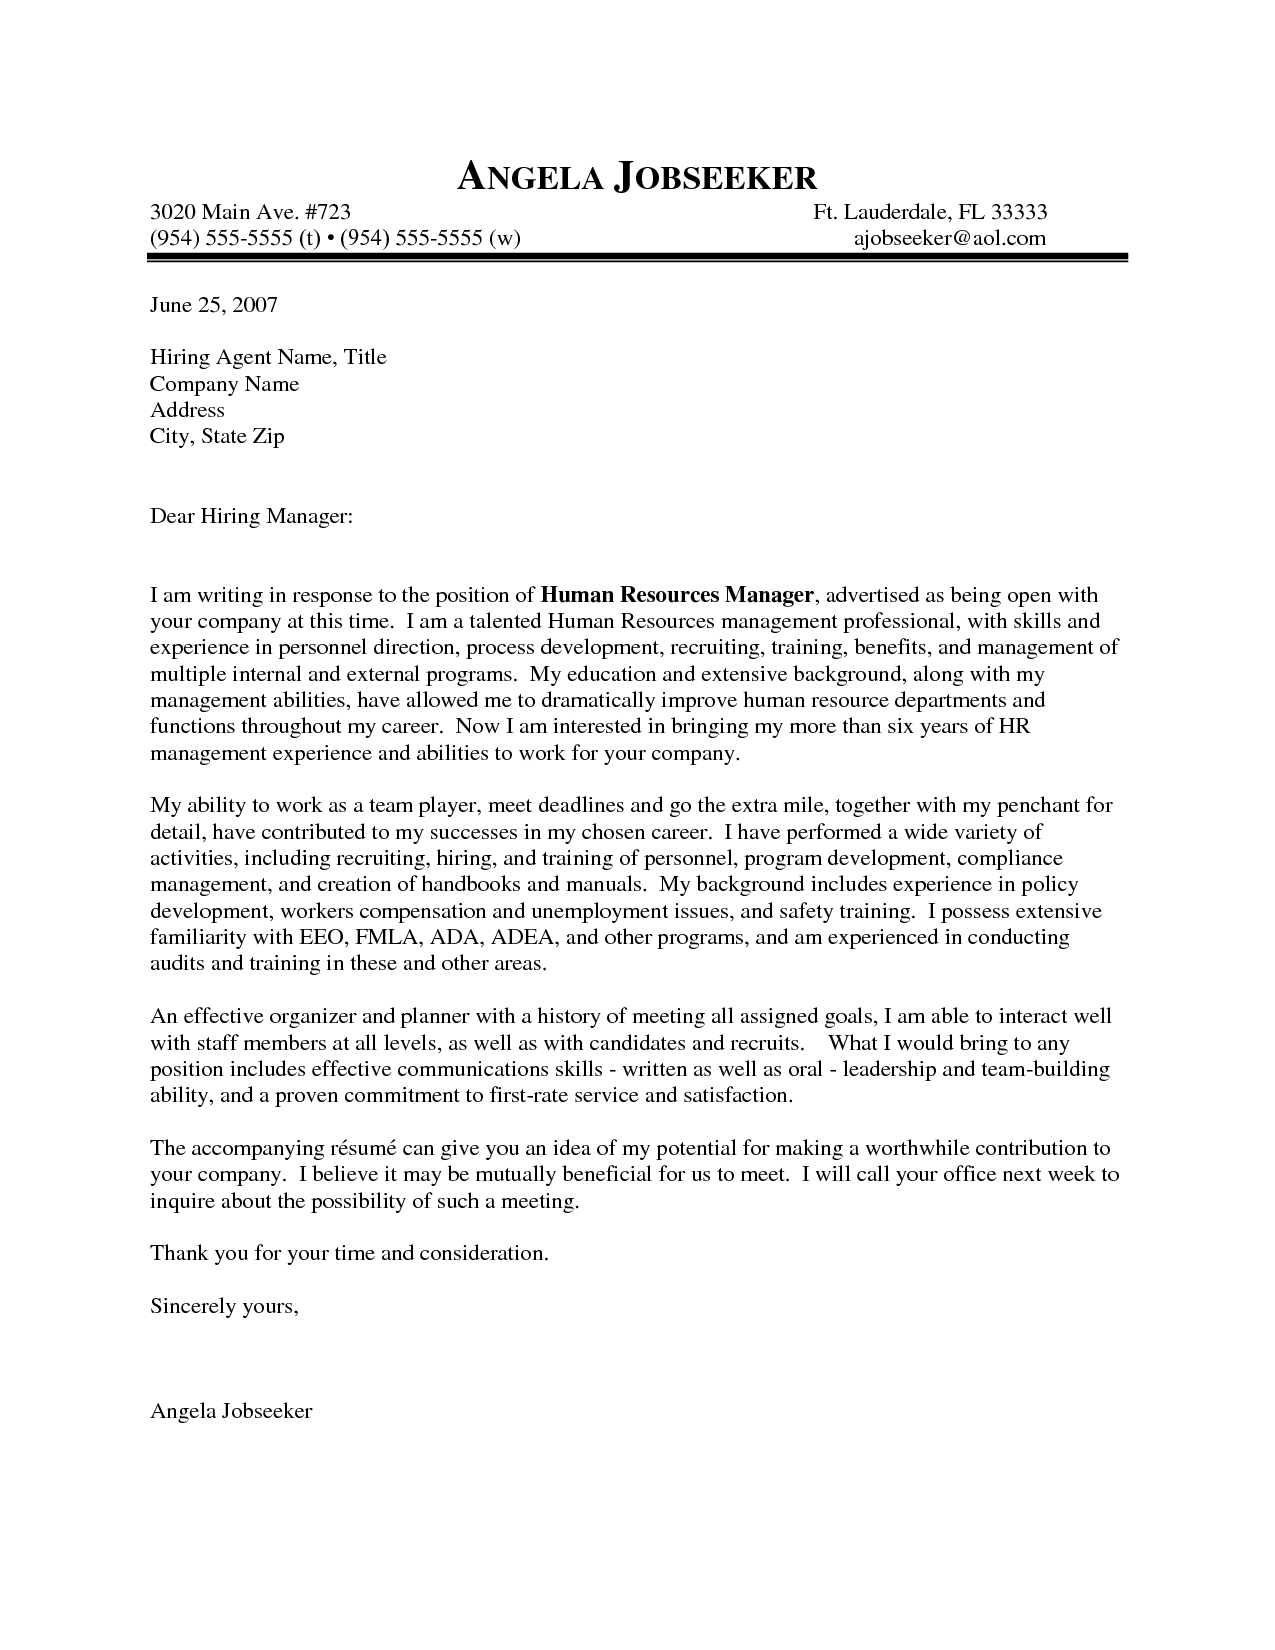 Cover Letter Template Human Resources Lettre De Motivation